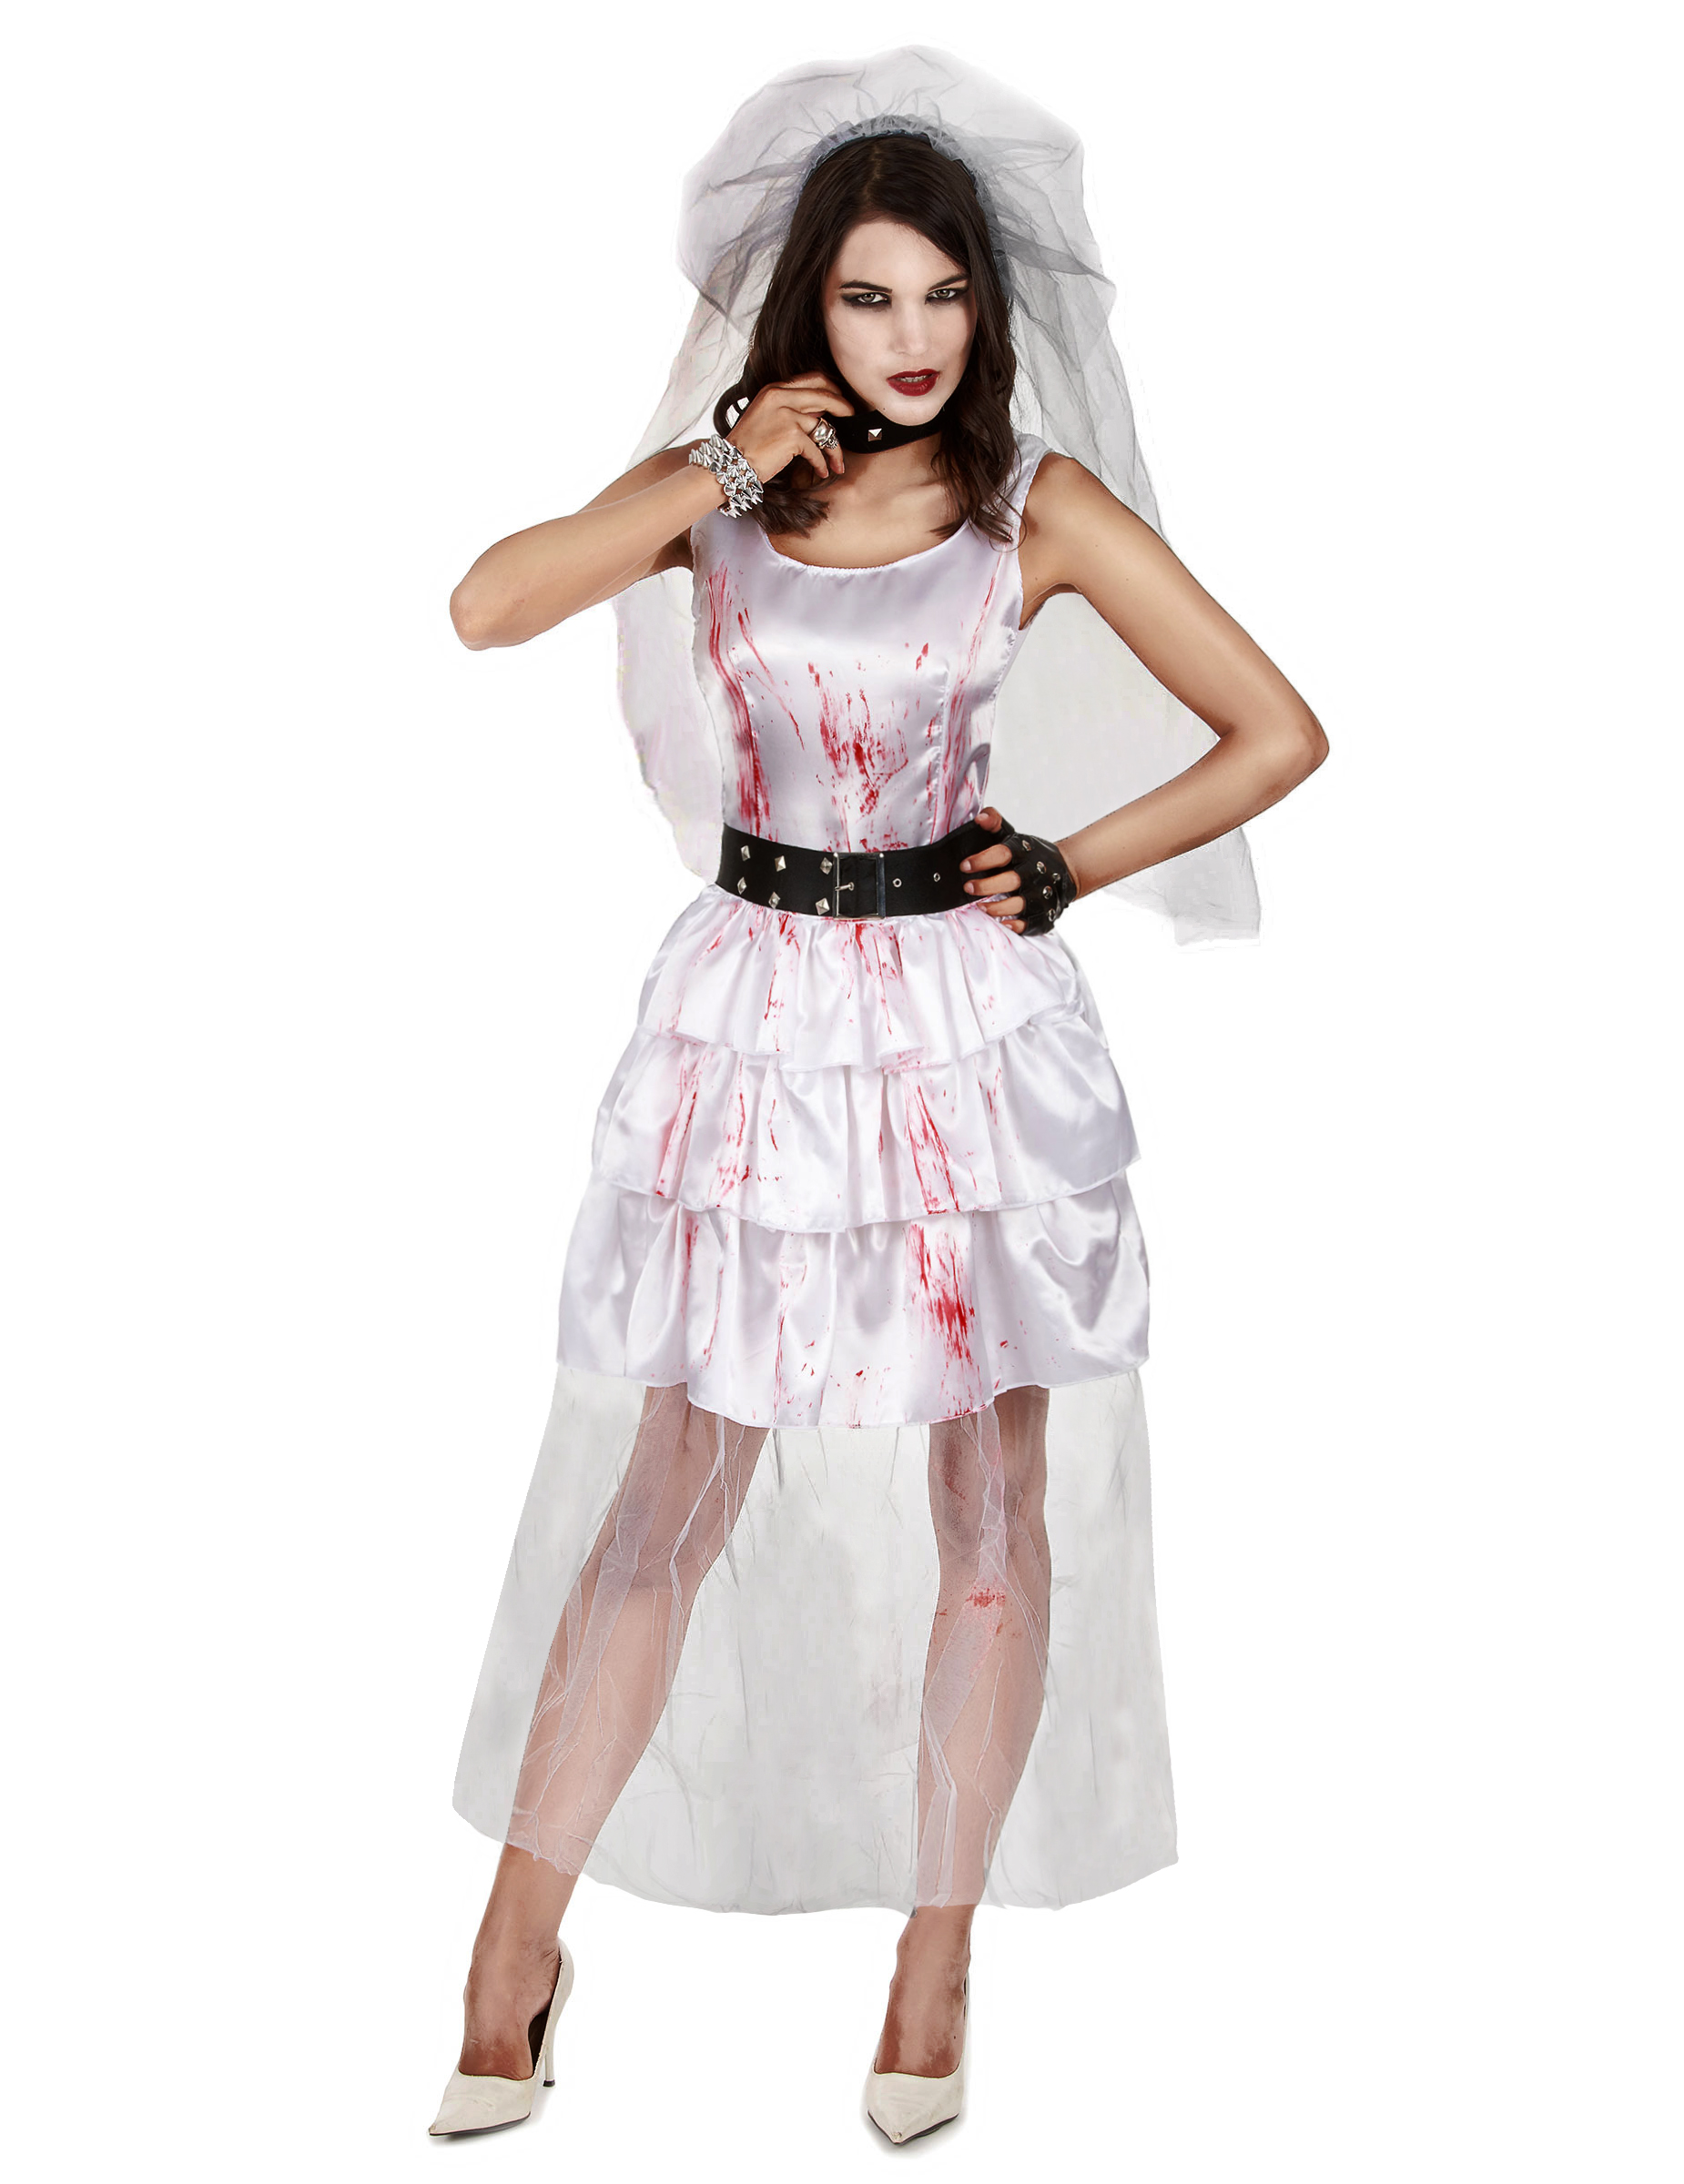 robe de mariee zombie deguisement femme robe de mariee halloween. Black Bedroom Furniture Sets. Home Design Ideas